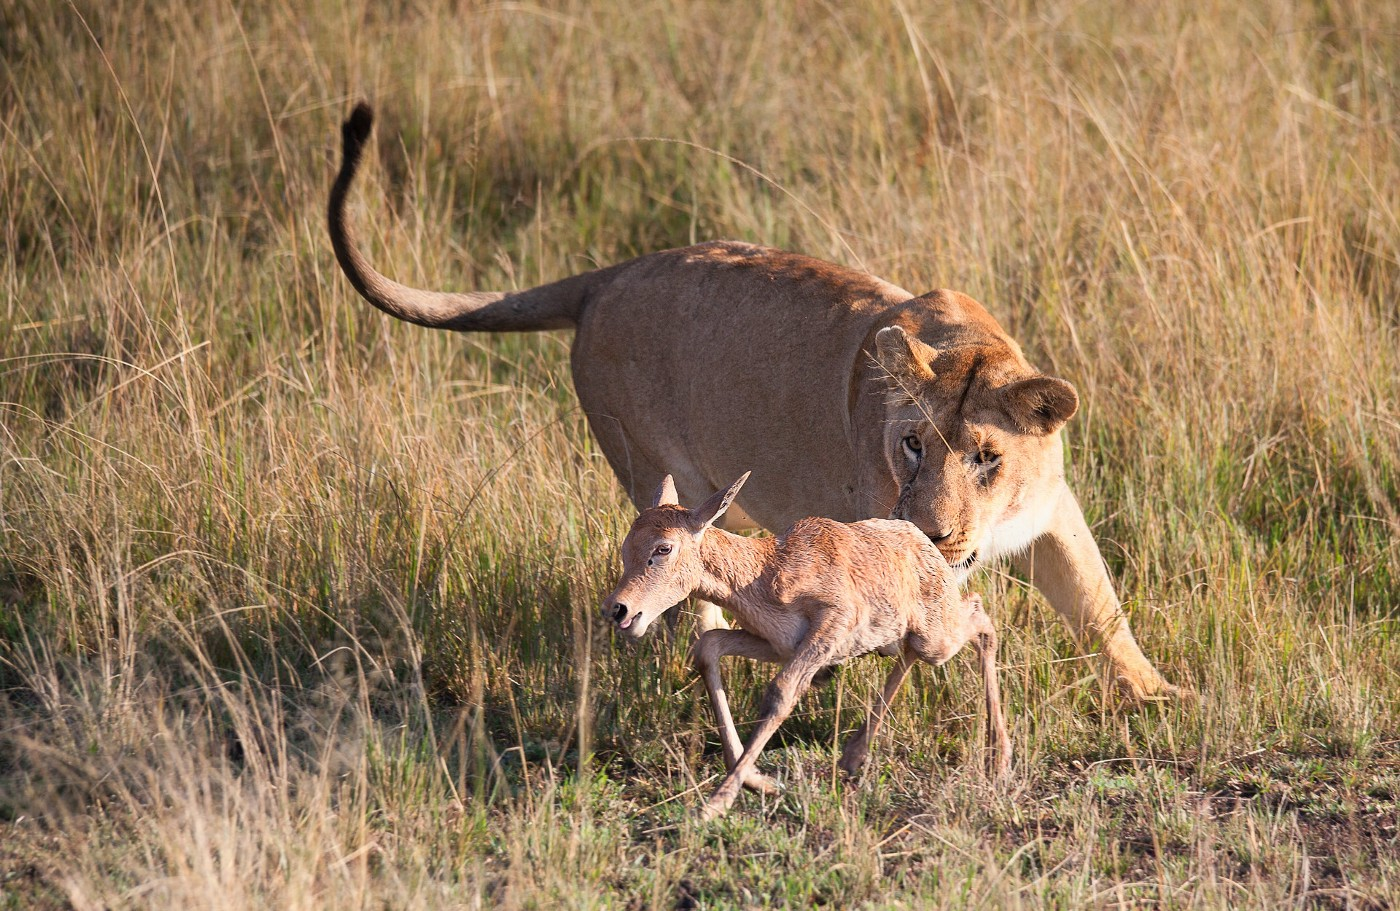 Lion hunting an antelope—a metaphor for meetings killing a company